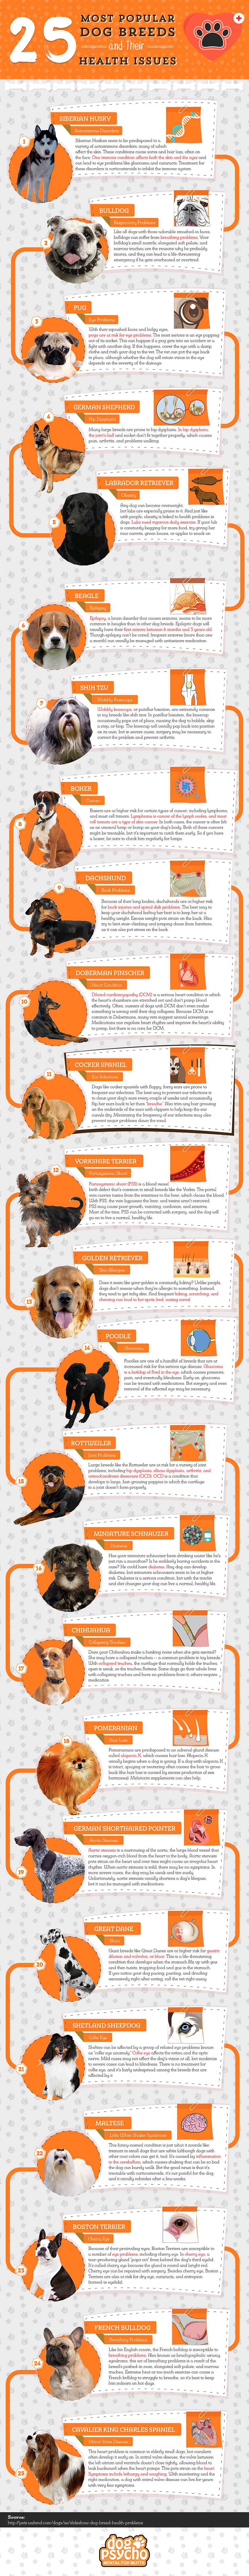 Popular Dog Breeds And Their Health Issues Infographic